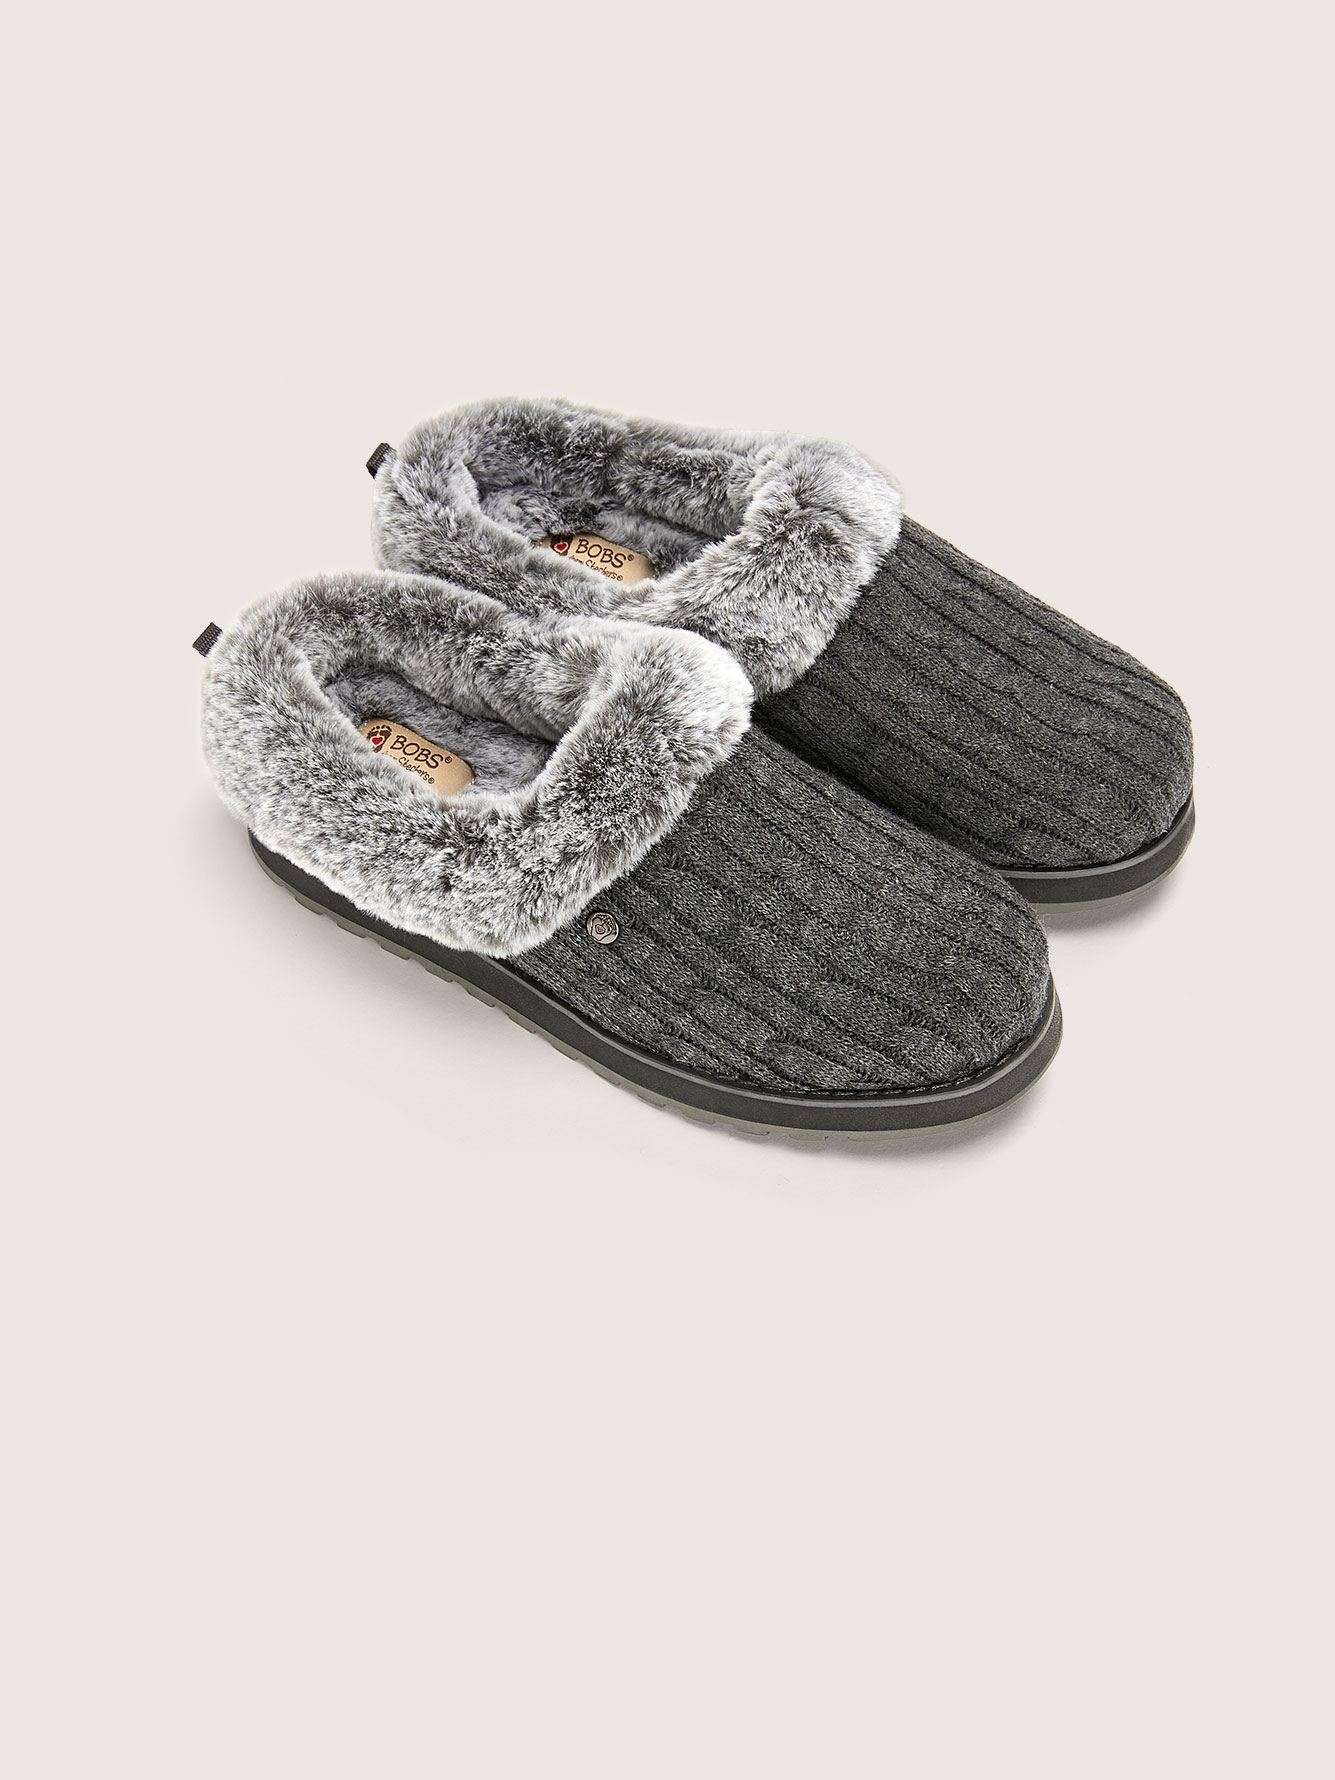 Wide Width Sweater Slippers - Skechers